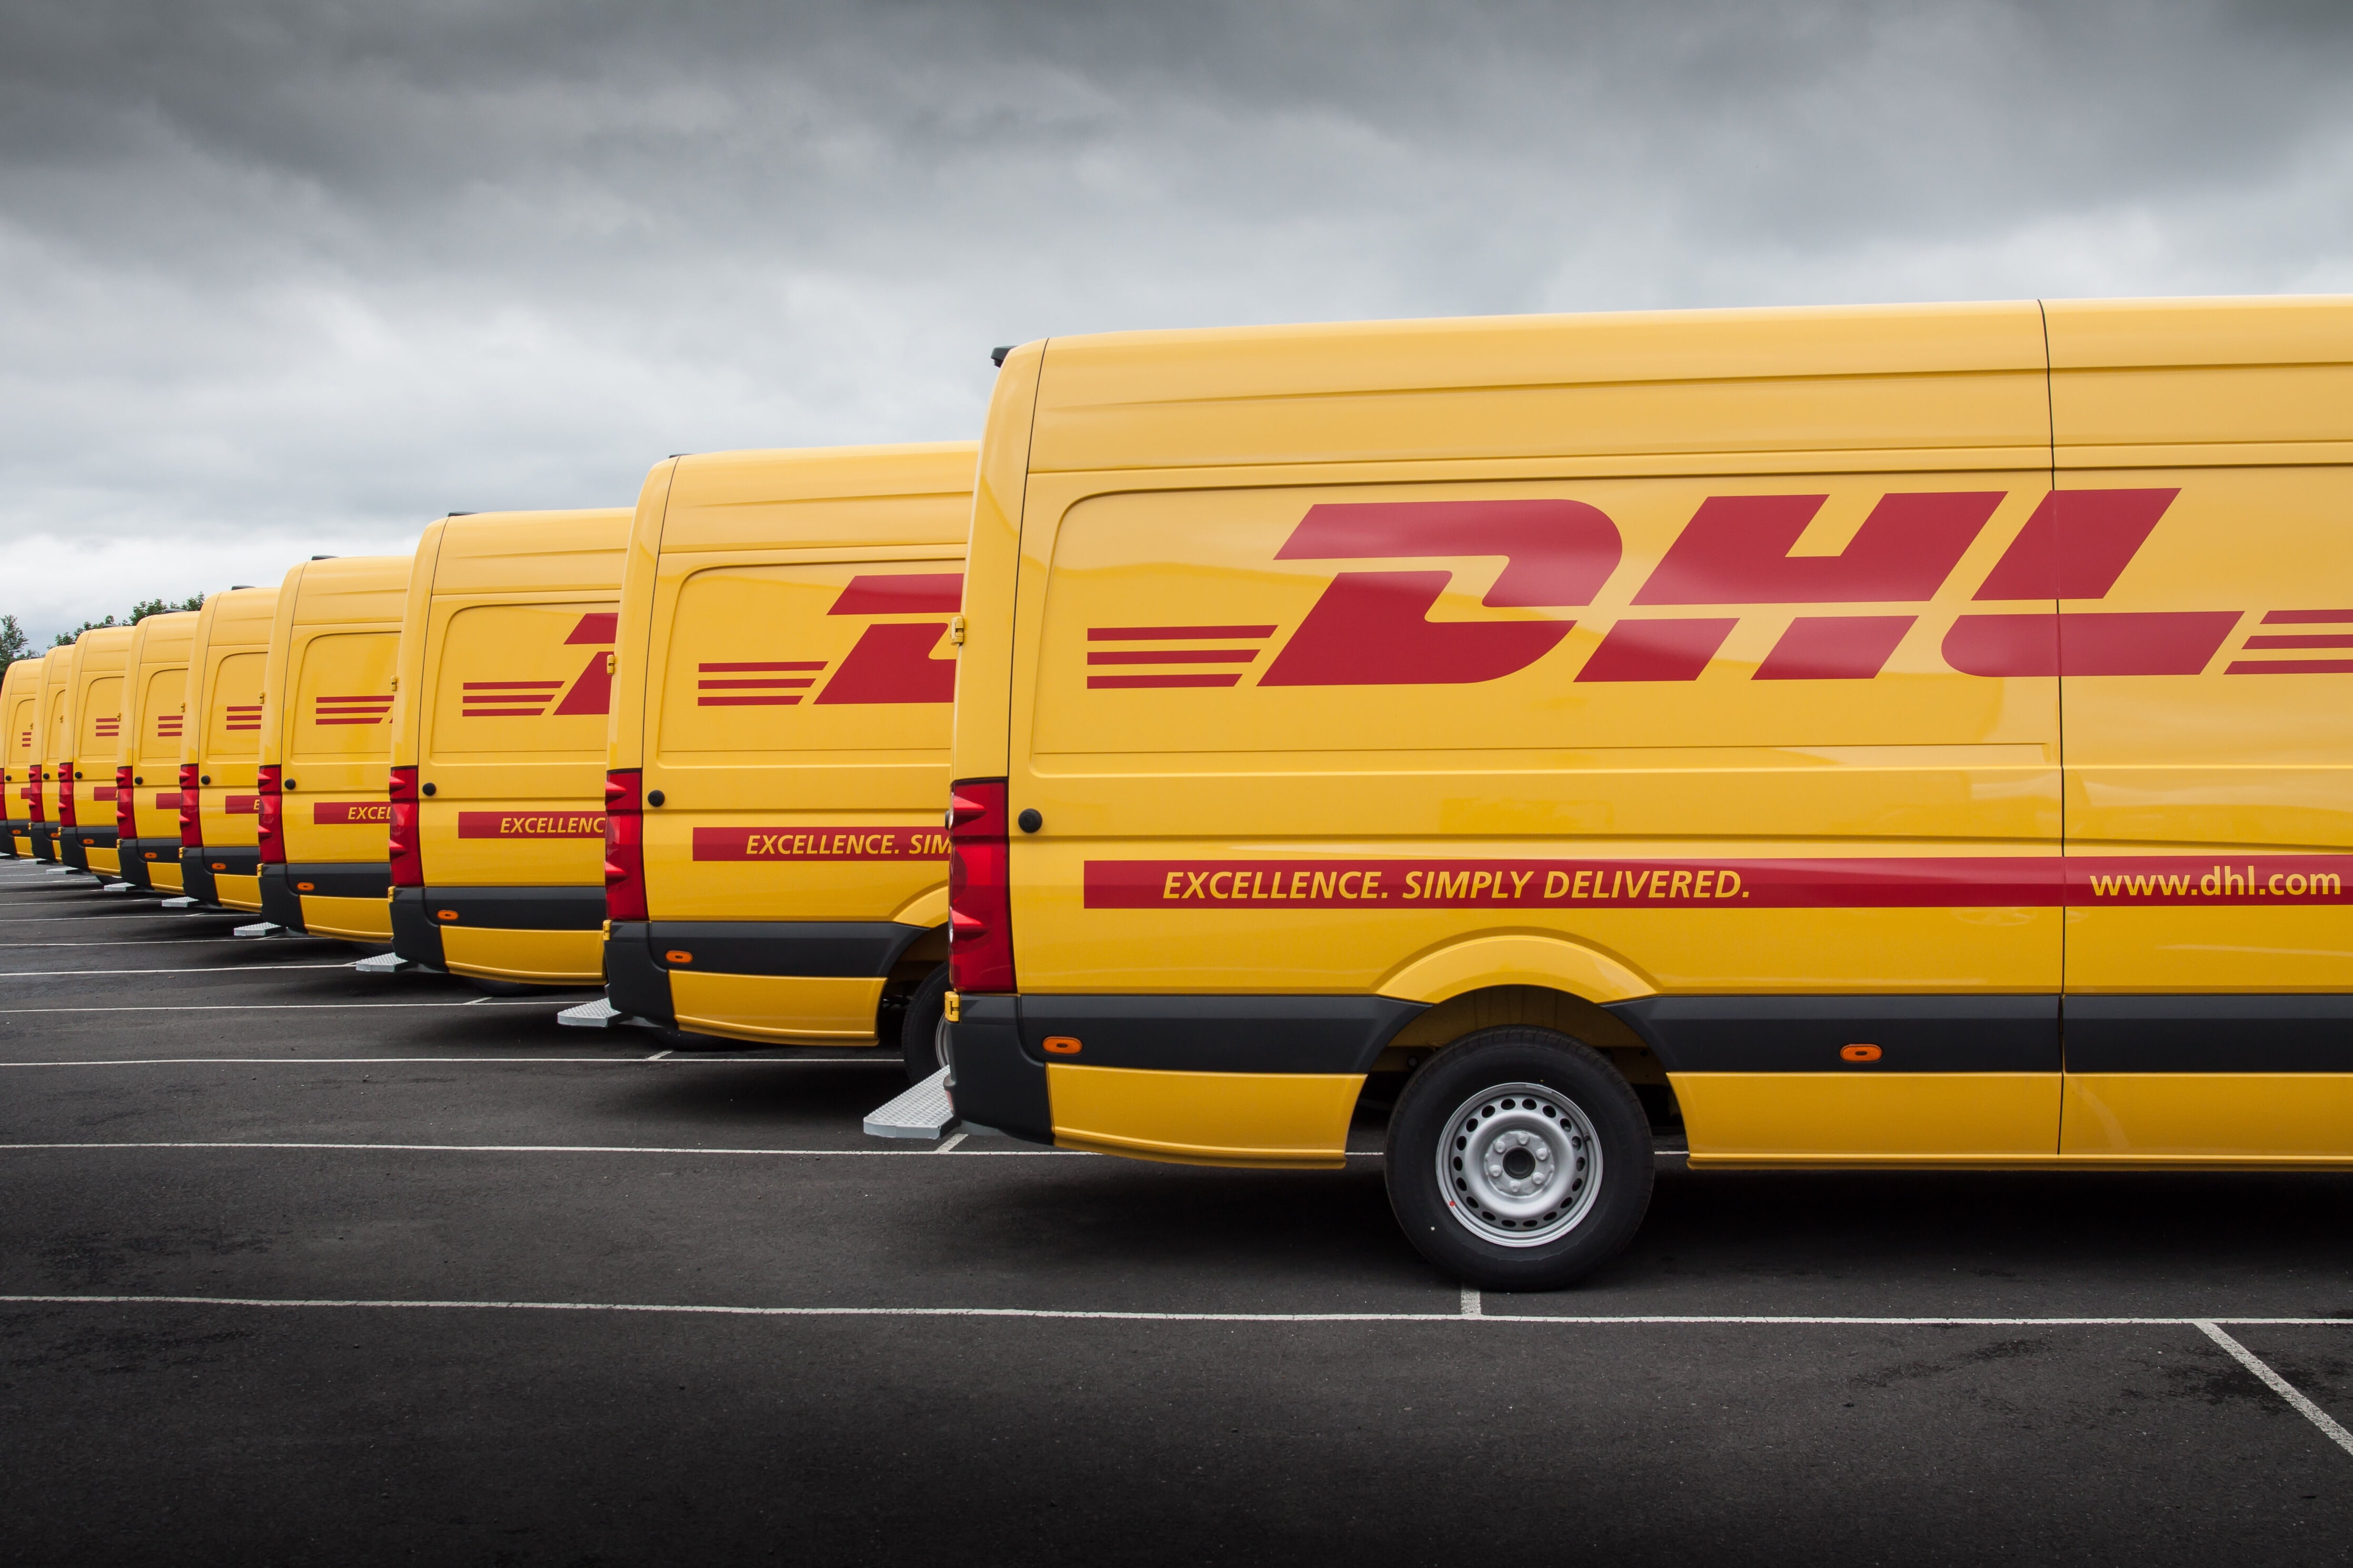 American Express, Google India and DHL among top 5 companies for